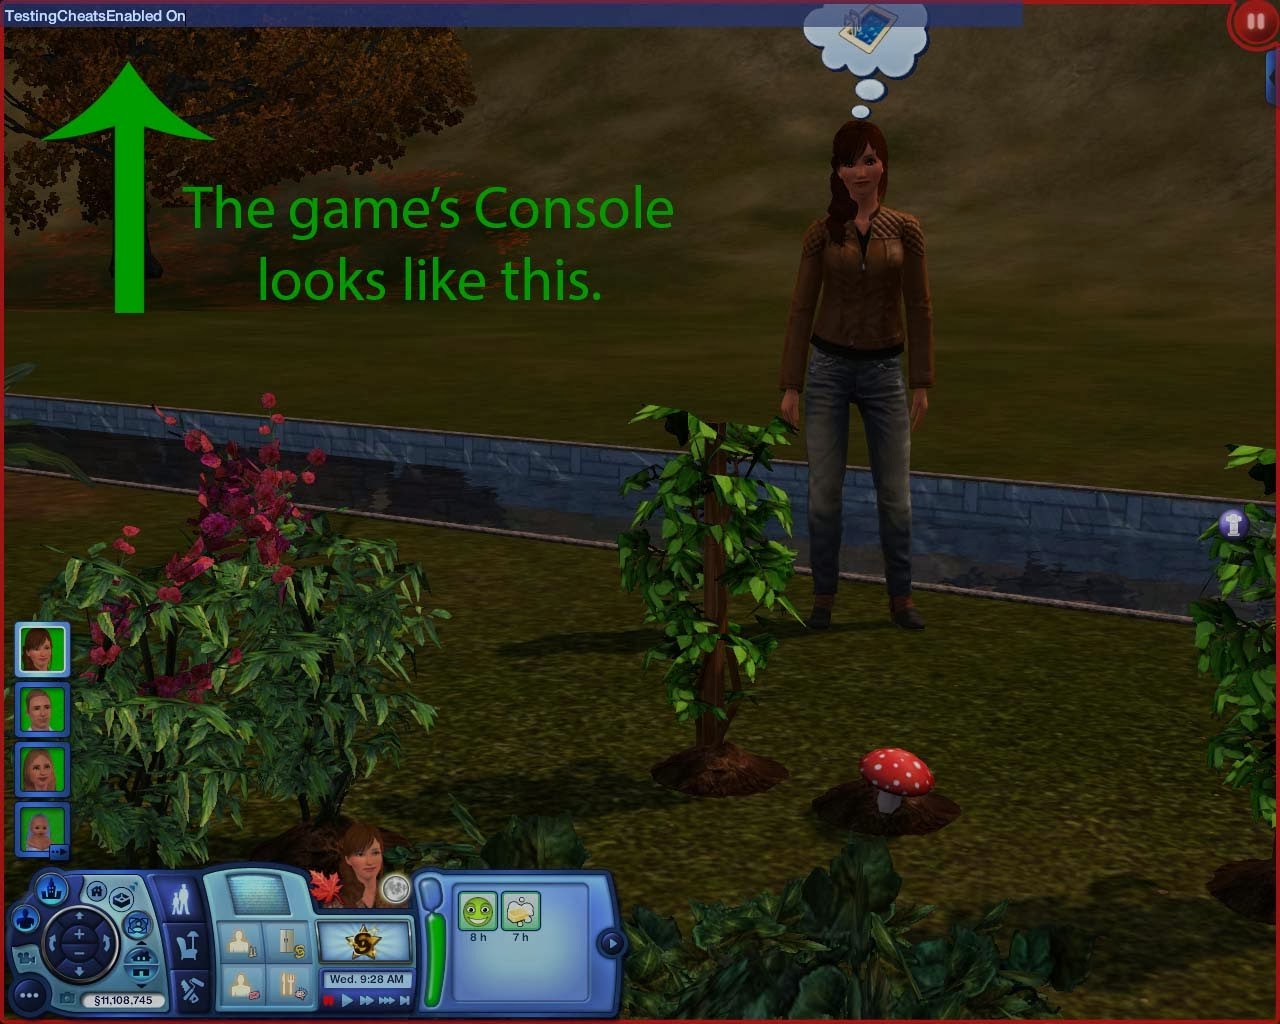 Summer's Little Sims 3 Garden: The Sims 3: Cheat Codes and How to